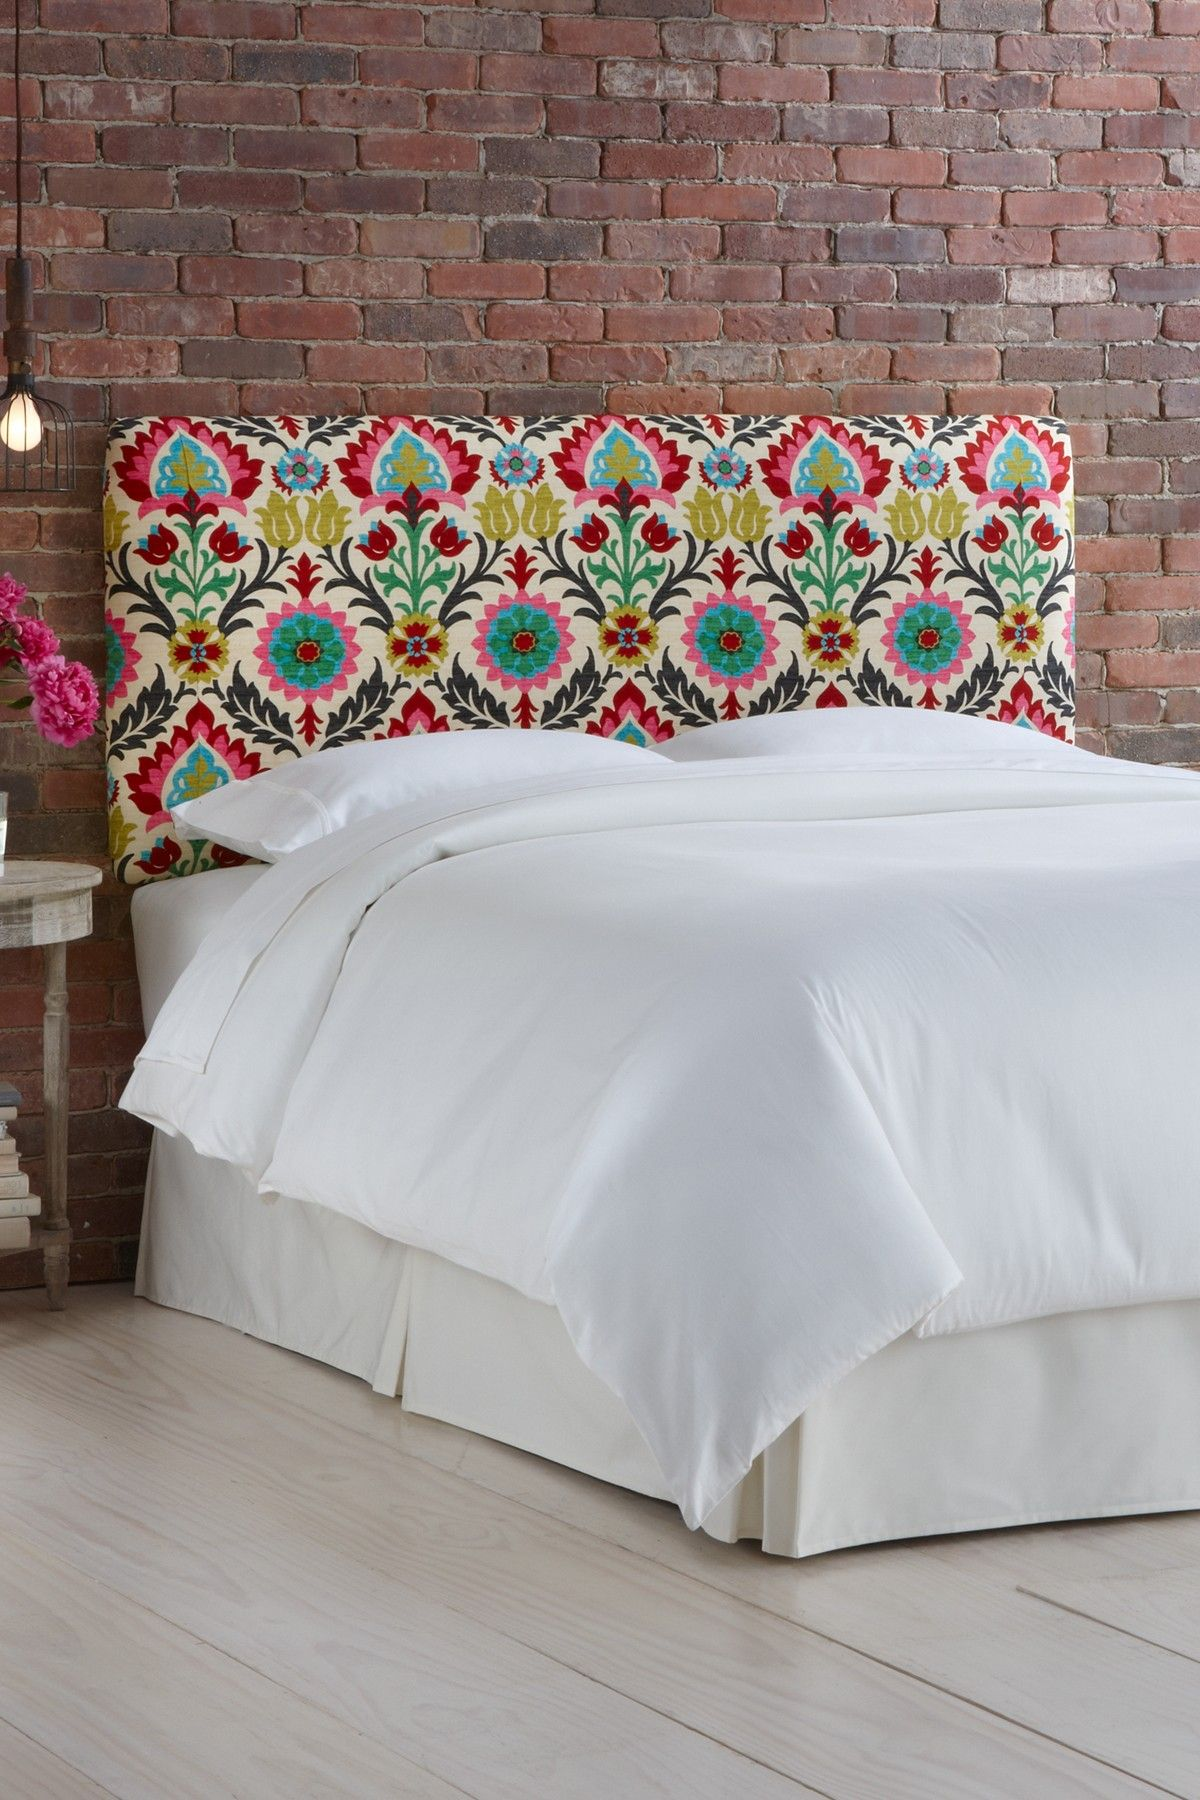 Santa maria desert flower upholstered headboard by gold coast furniture collection on hautelook